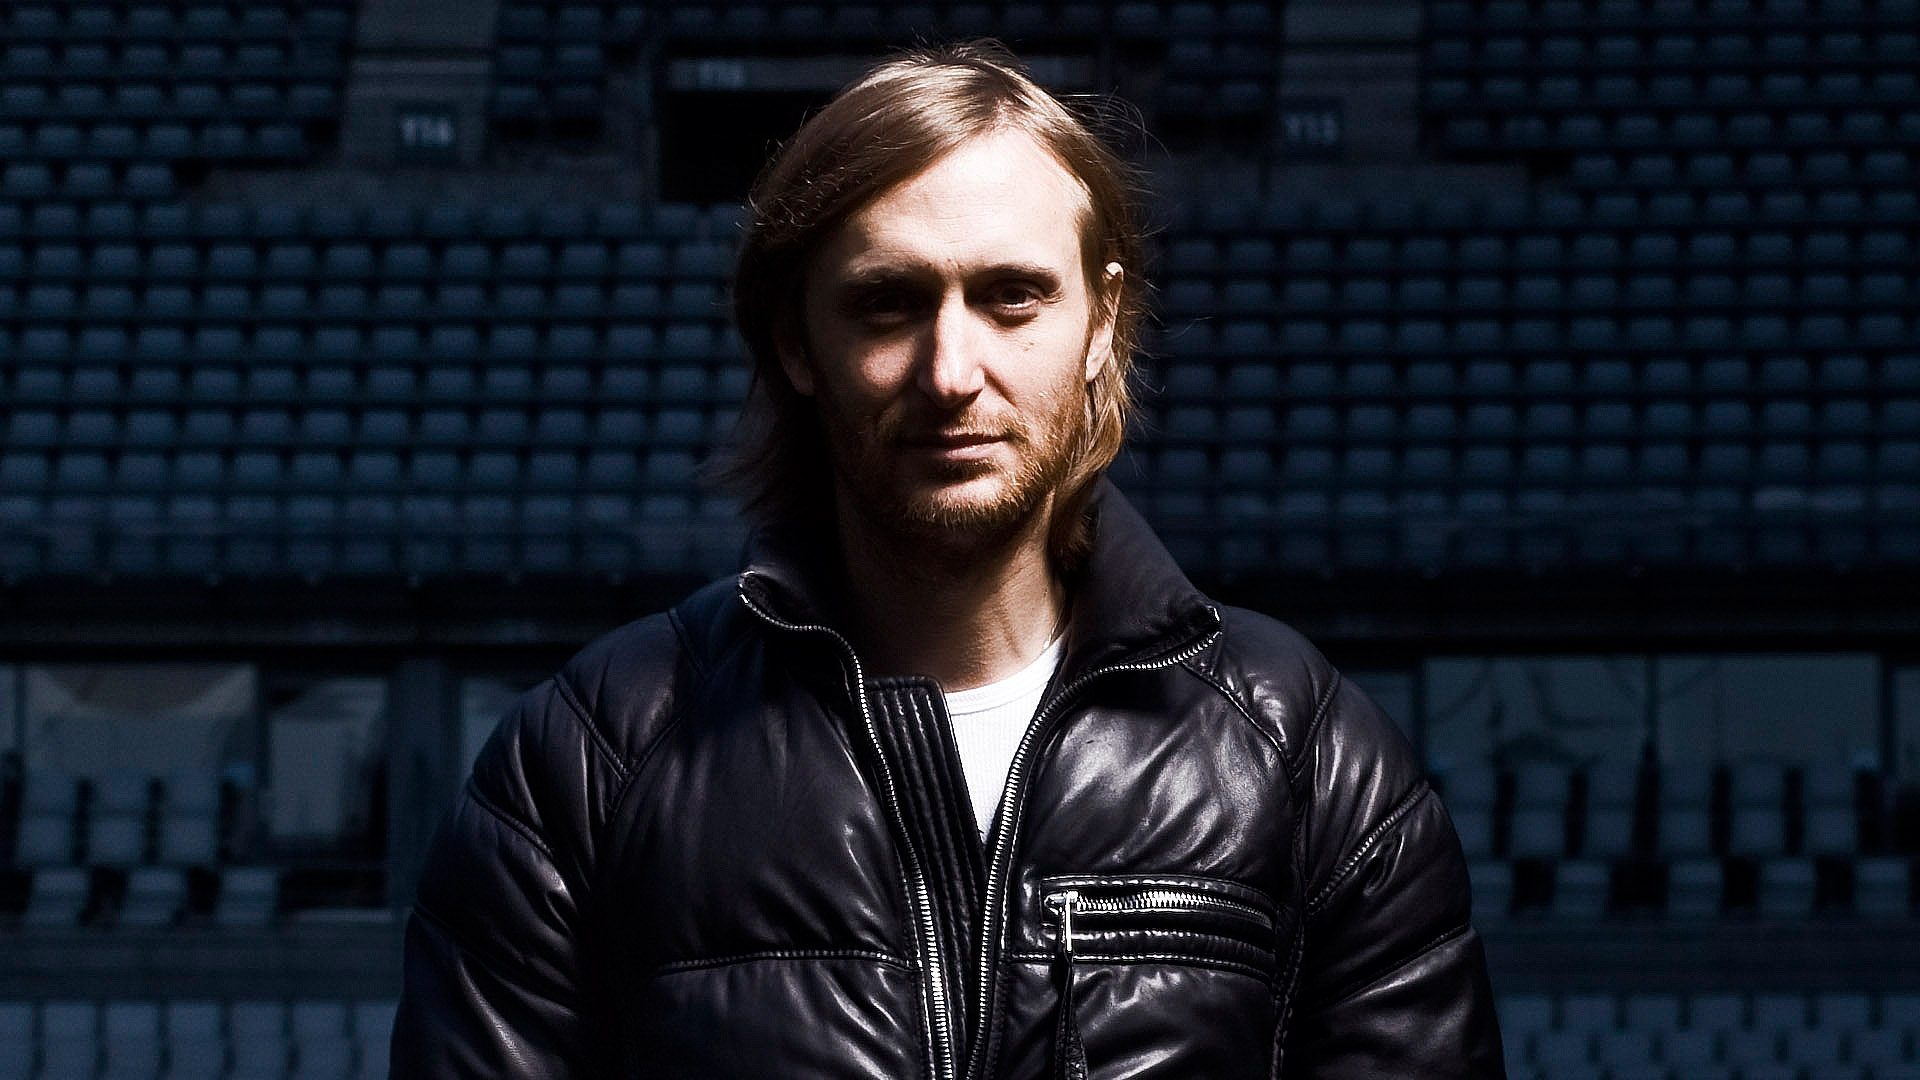 david guetta widescreen desktop wallpaper 1182